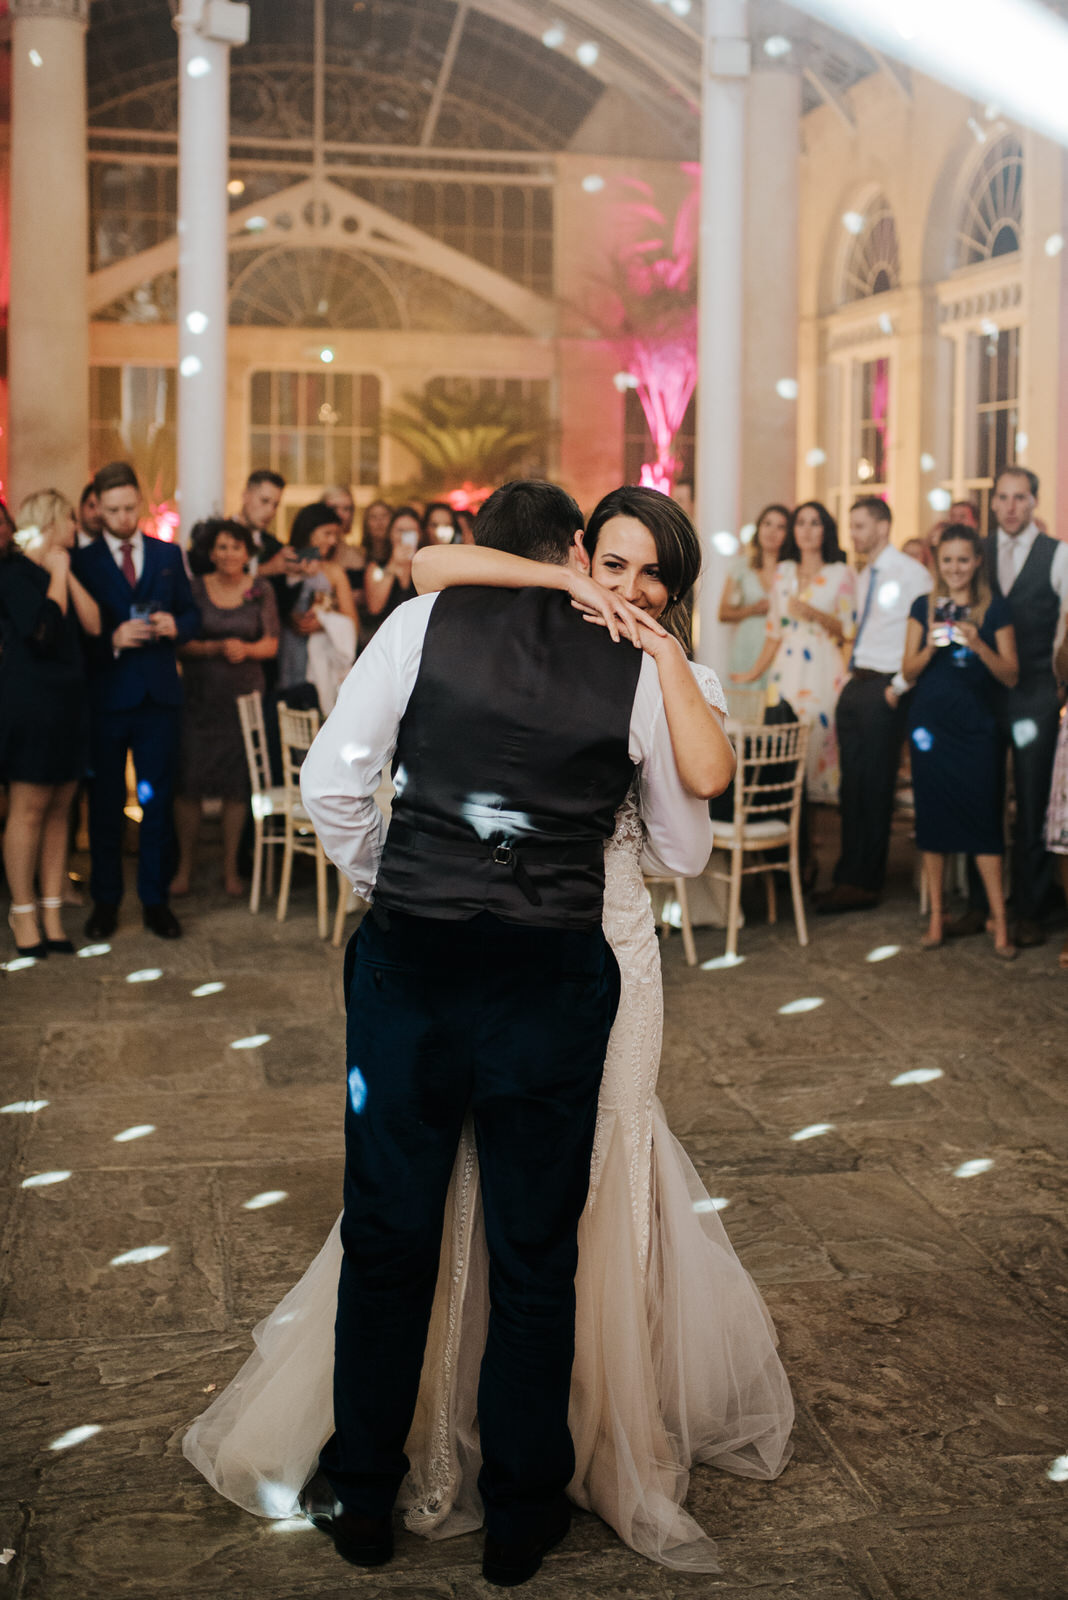 Bride hugs groom as they begin their first dance, flanked by guests